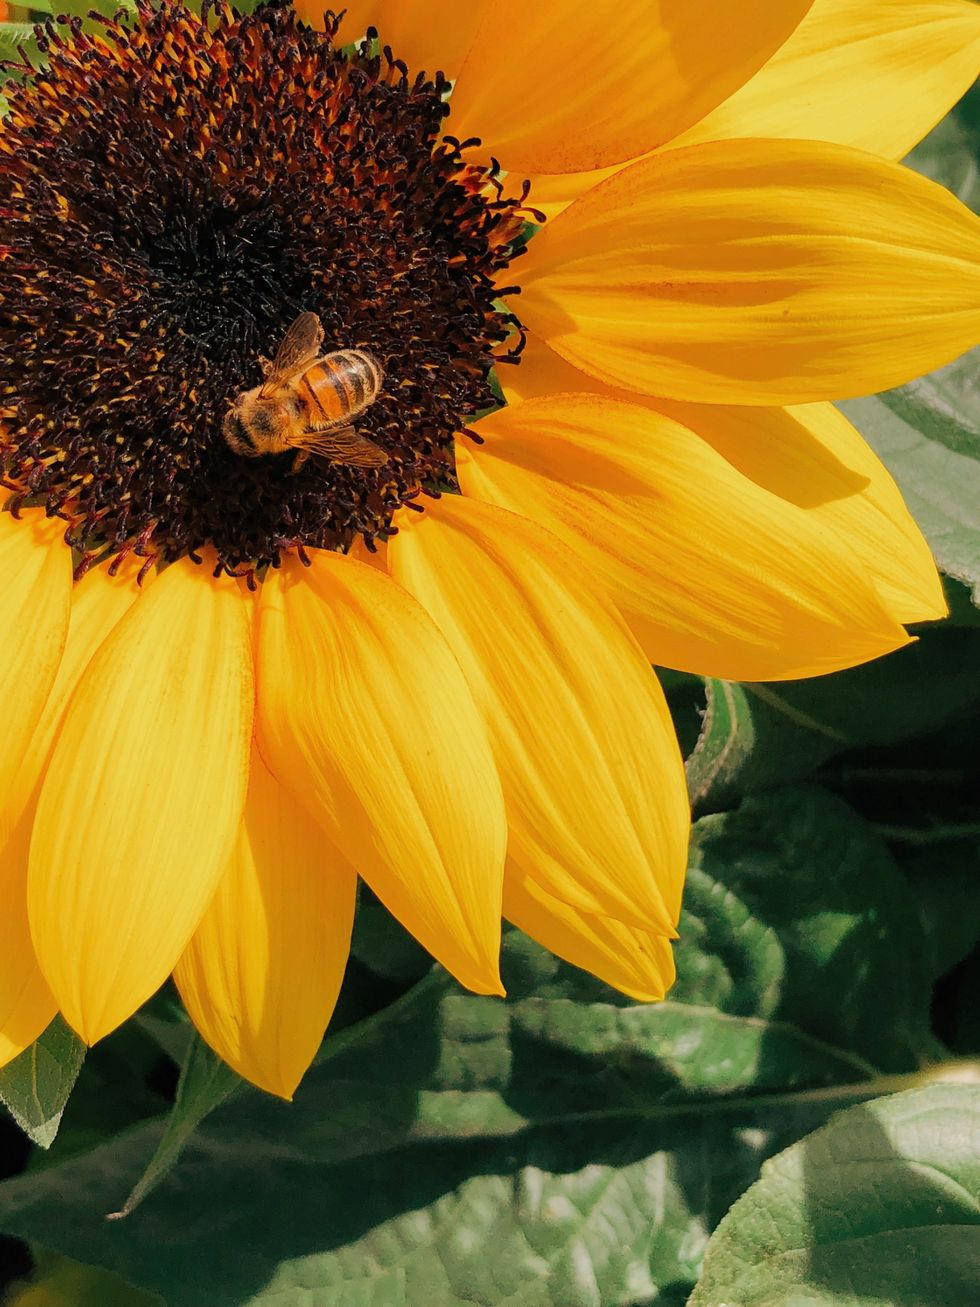 honey bee perched on yellow sunflower in closeup photography